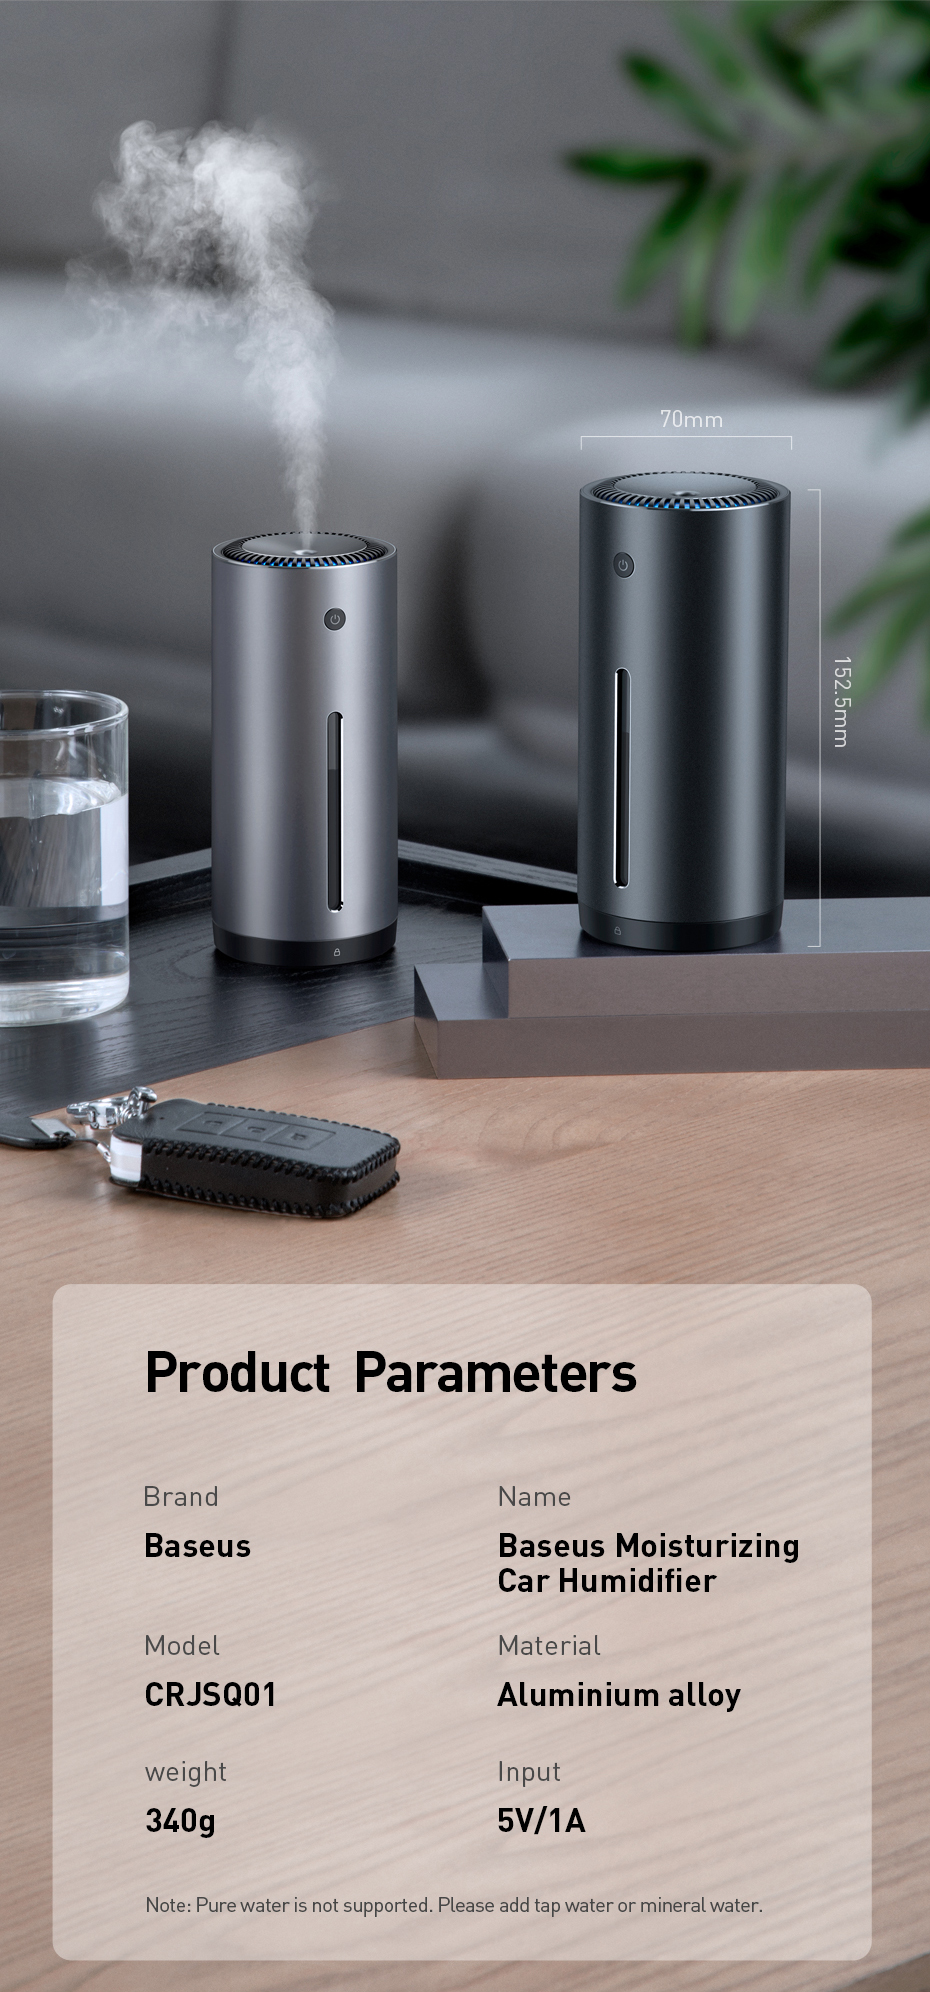 BASEUS Car Air Purifier with Essential Oil Aroma Diffuser and USB for Home and Office Air Purification 13